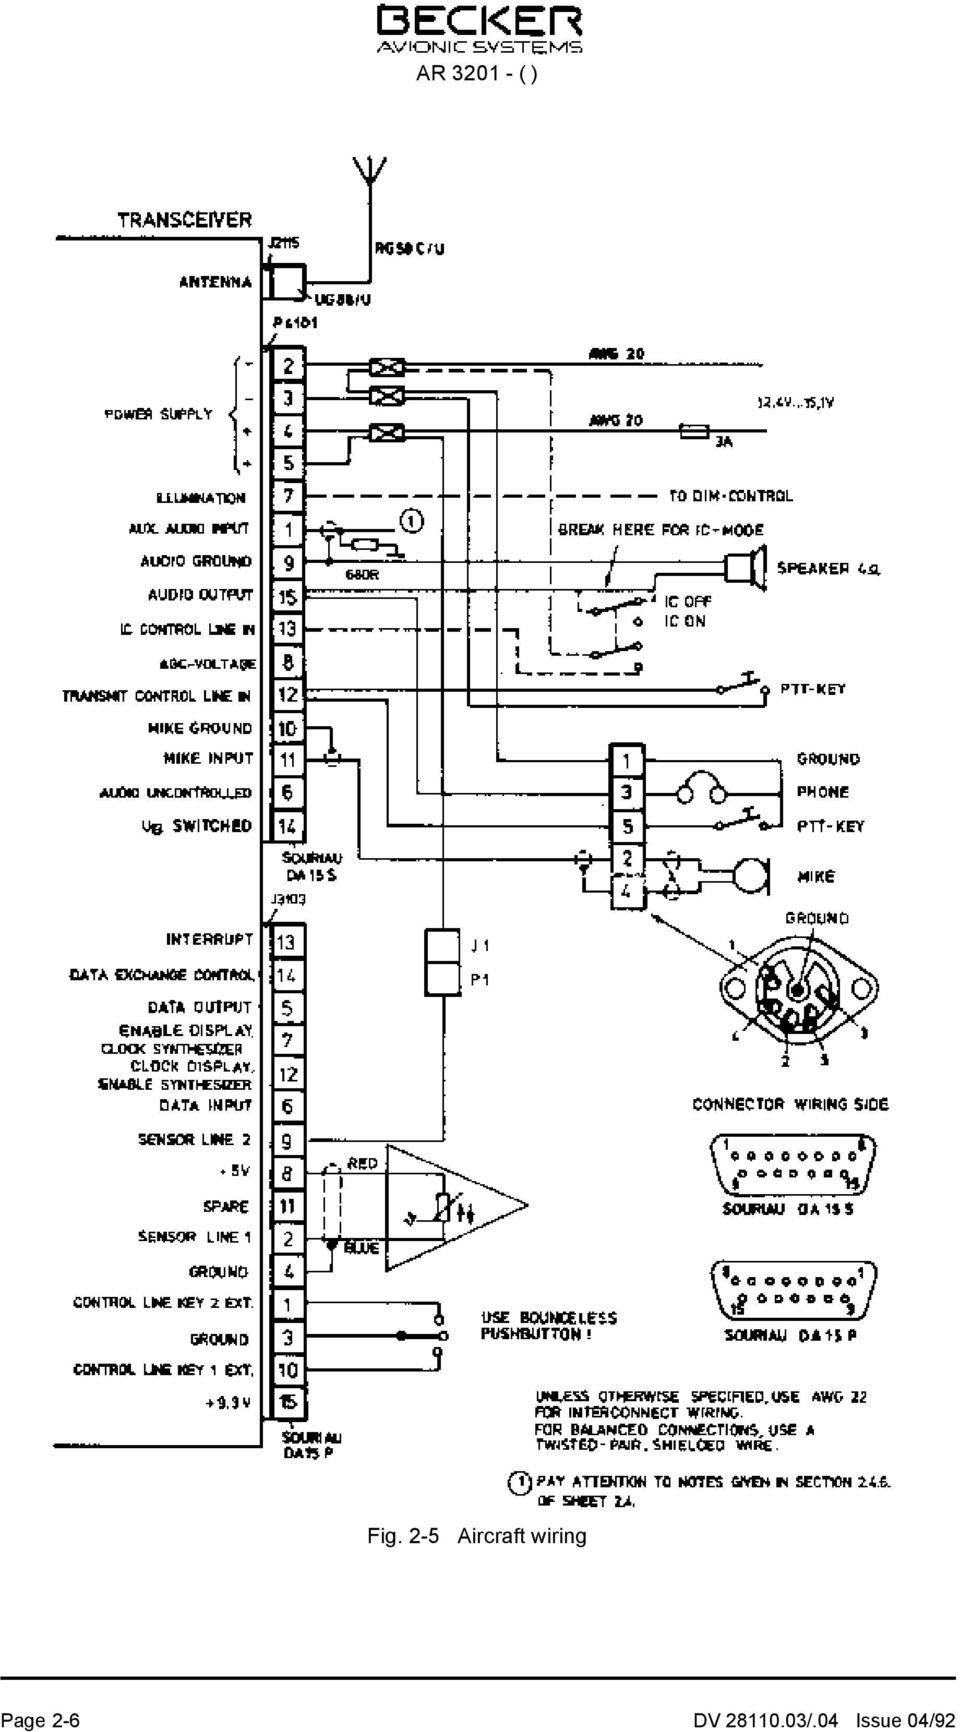 Ar Vhf Transceiver Installation And Operation Manual Dv Issue Mono To Stereo Mic Jack Wiring Diagram Also Val Speakers 2 6 With Speaker Junction 04 92 Page 7